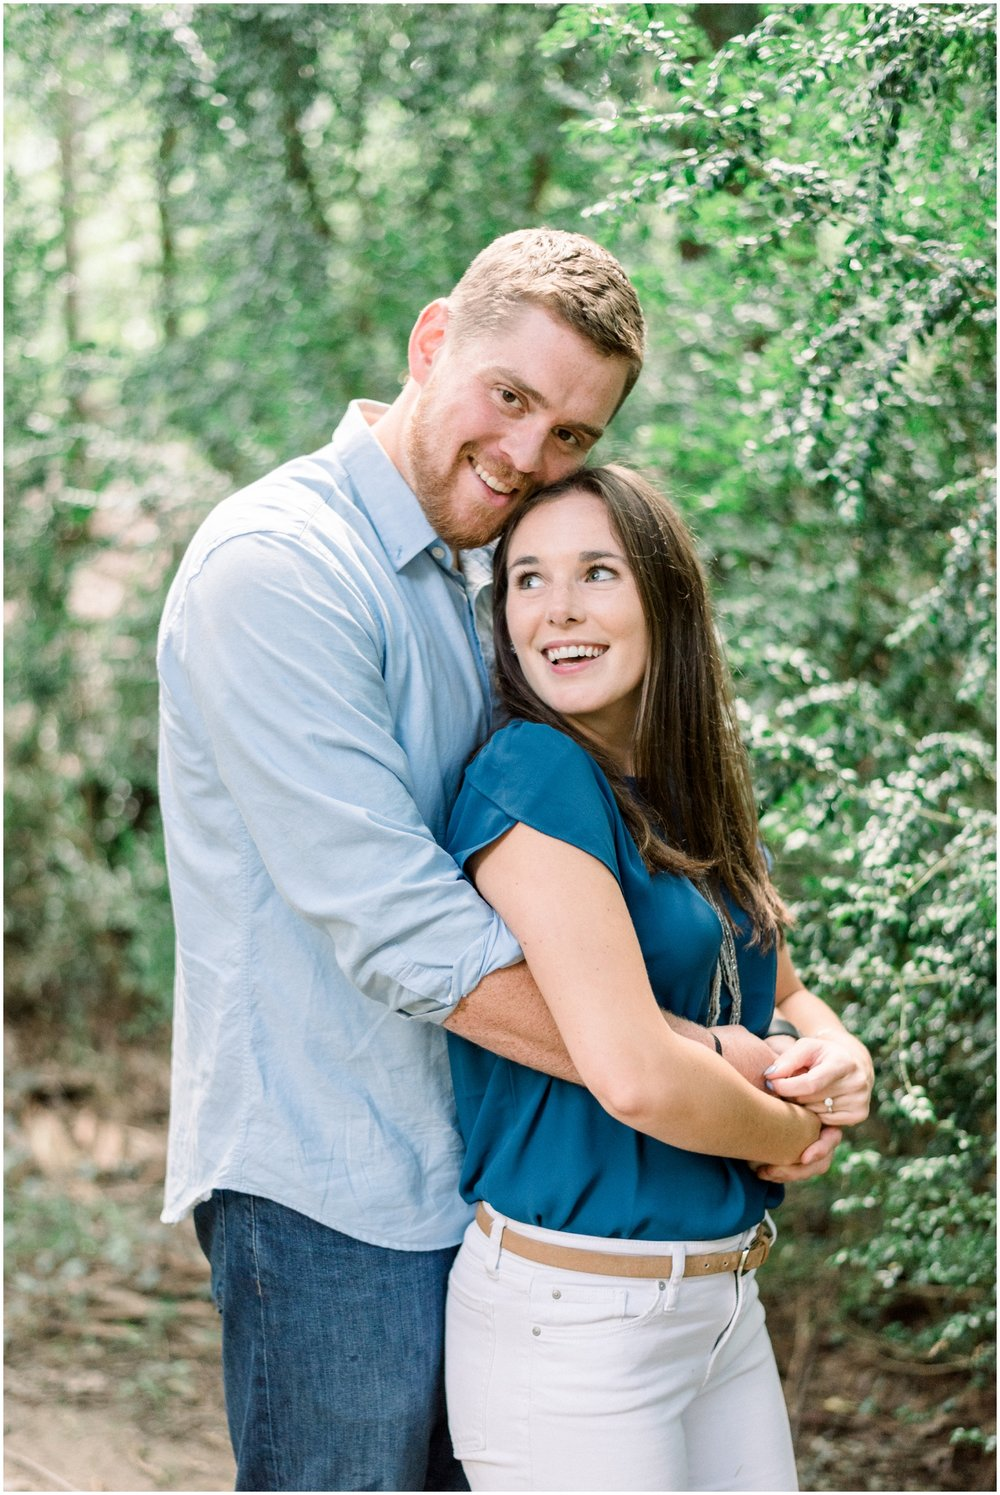 Summer Engagement Session at Hunting Hill Mansion - Krista Brackin Photography_0016.jpg